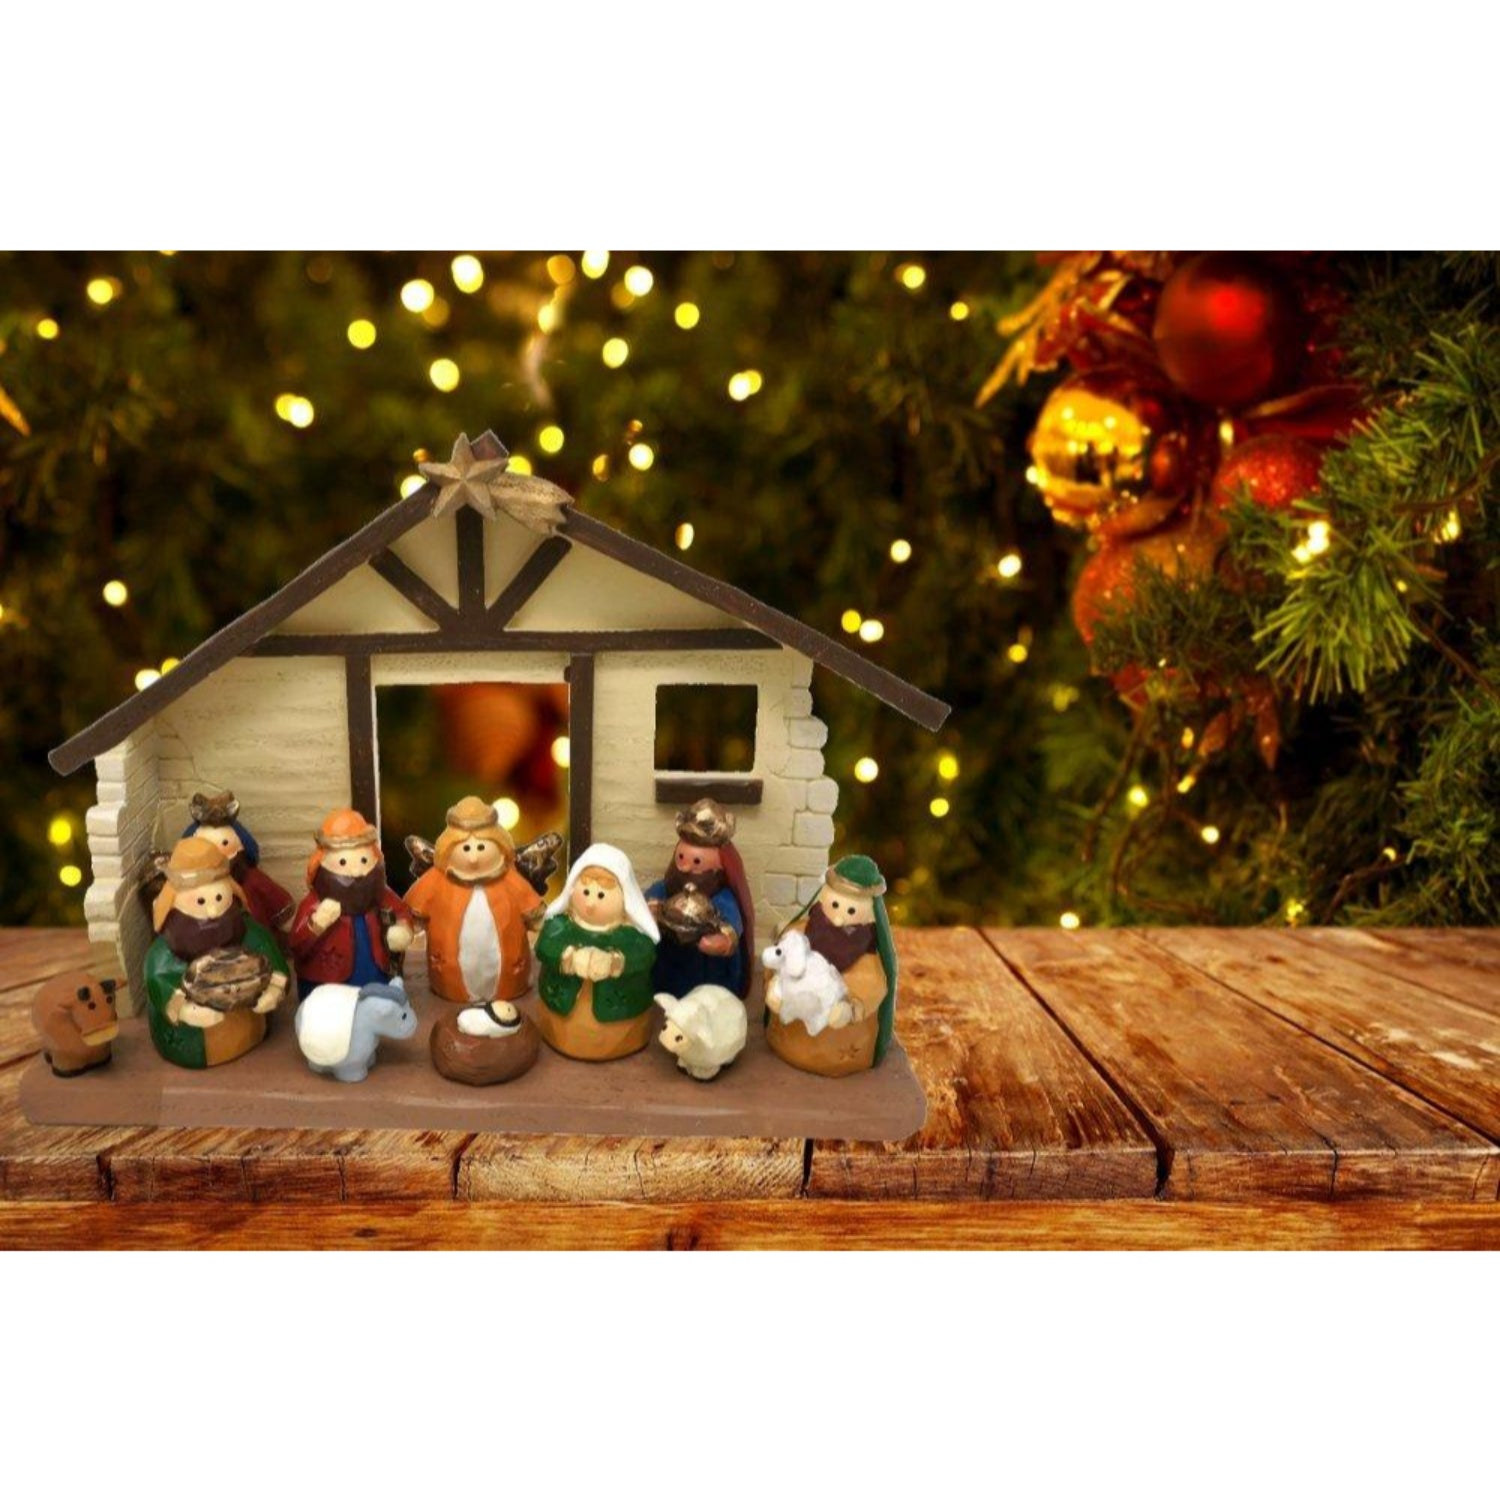 Charming Rustic Christmas Nativity Set With Wood And Metal Creche